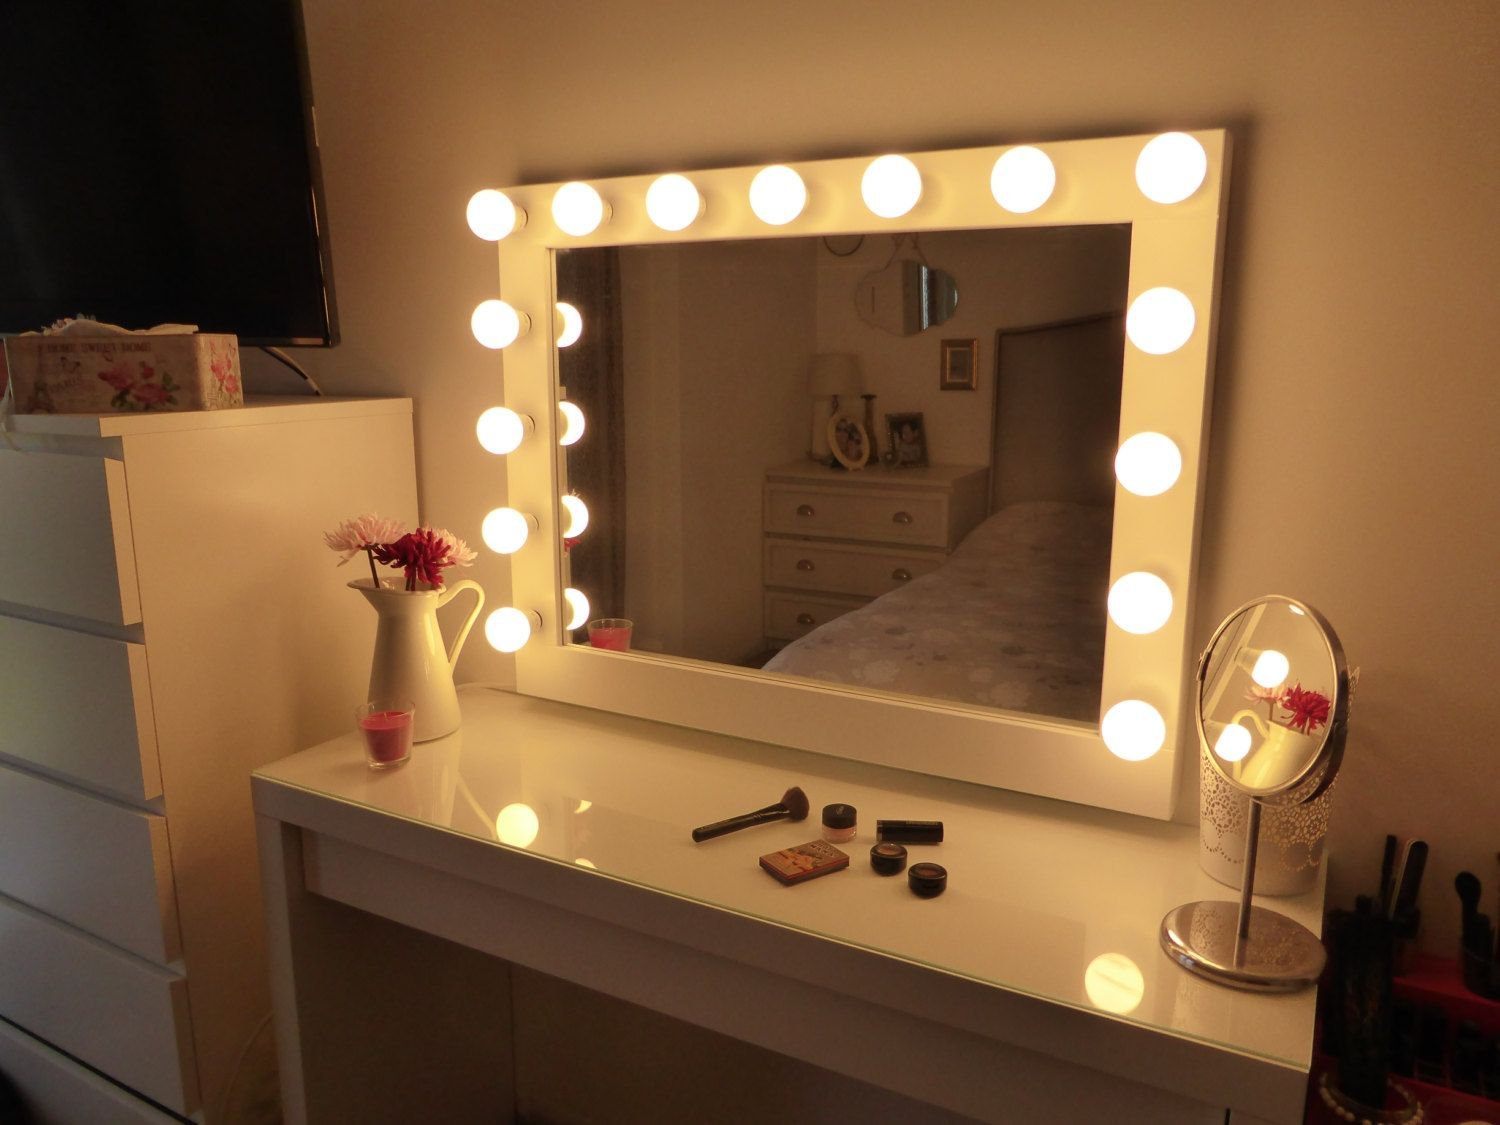 Ikea Badezimmerspiegel Led Hollywood Wall Mirror Lights Vanity Diy Vanity Mirror With